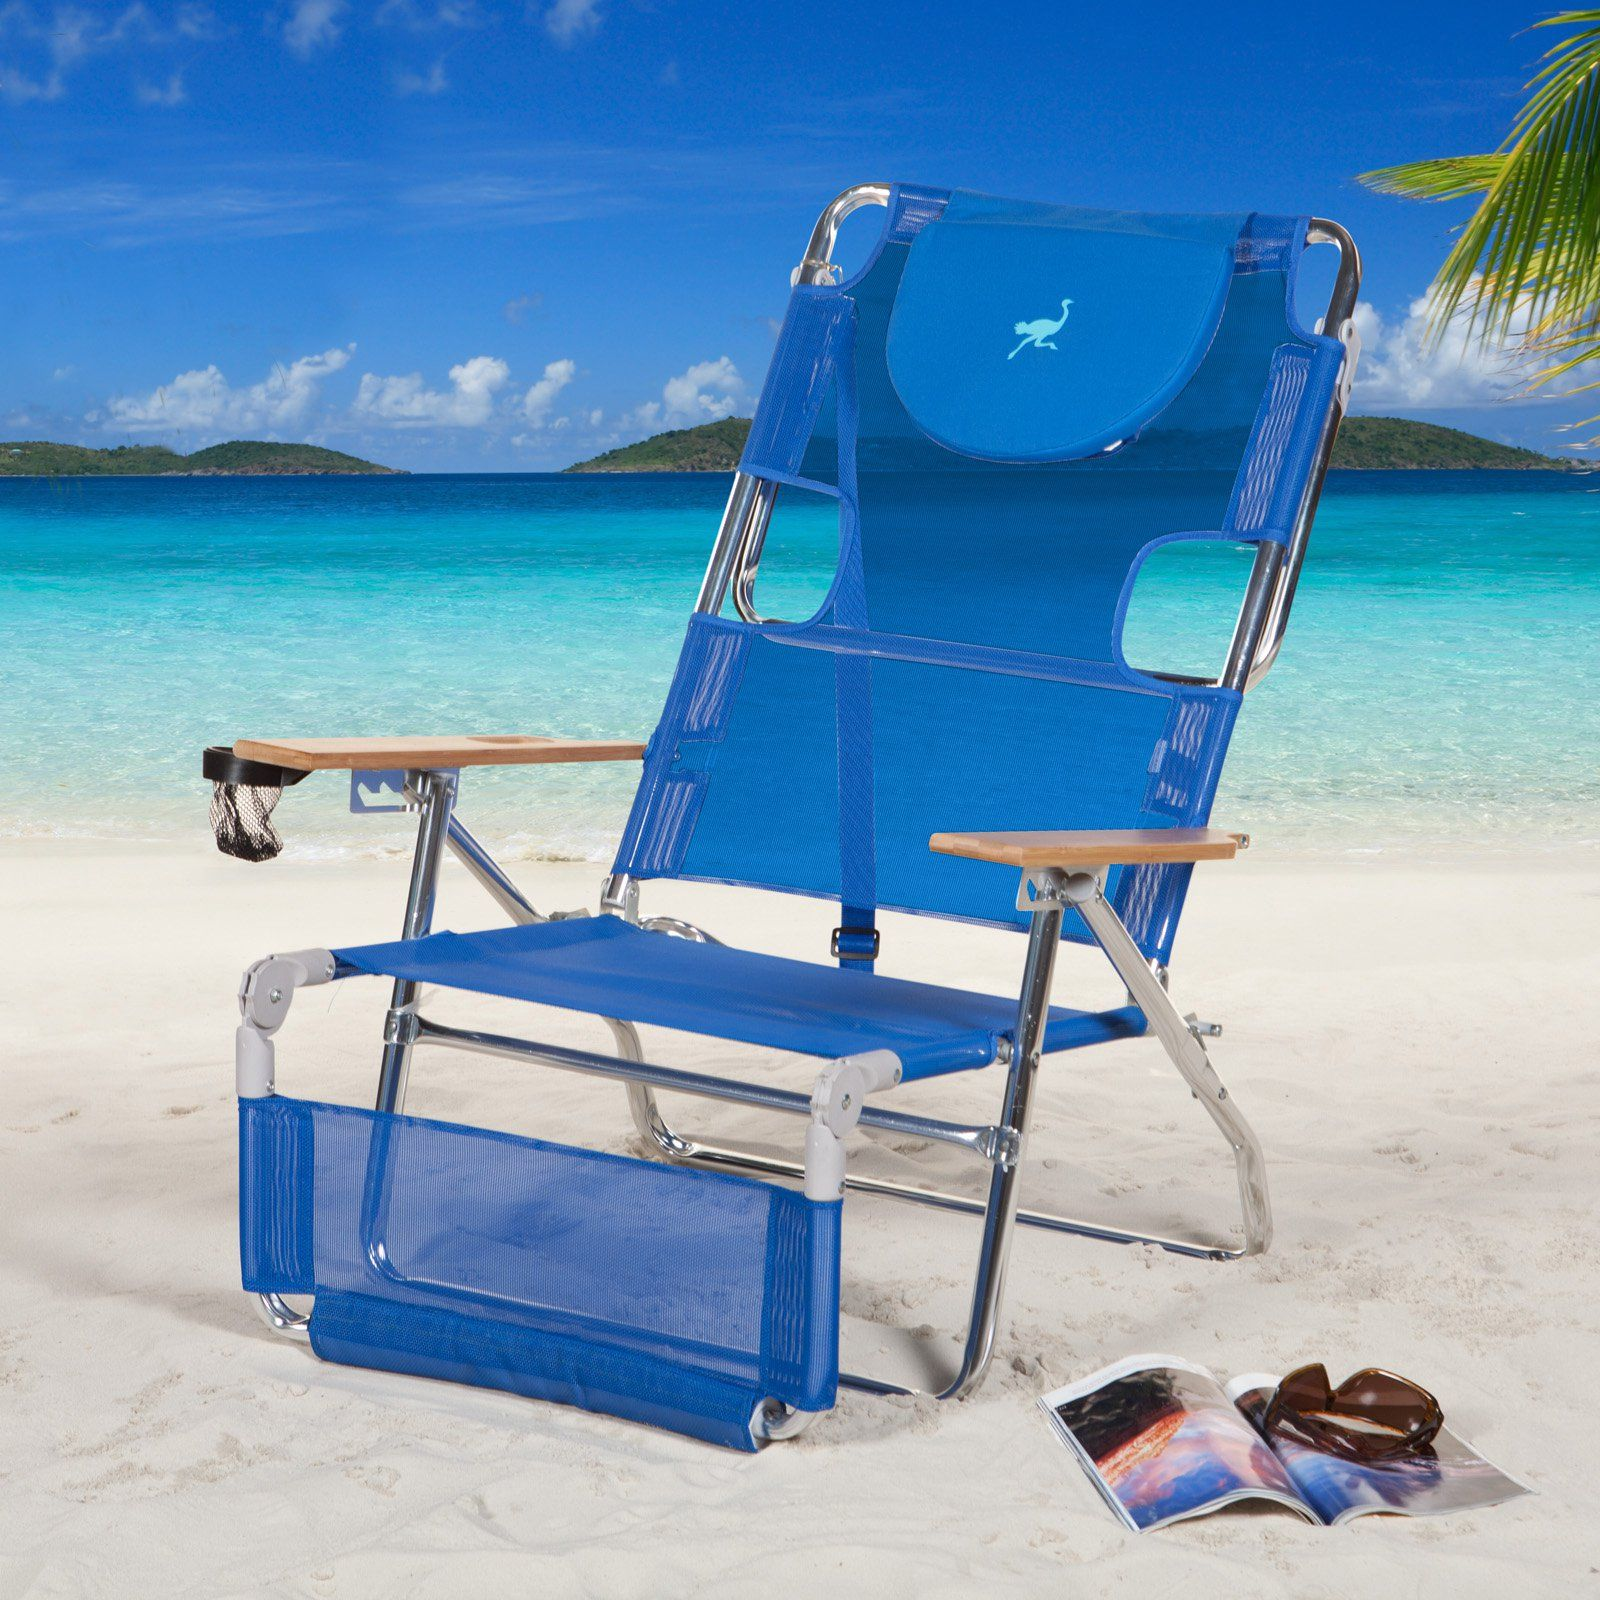 Outdoor Ostrich 3N1 Beach Chair with FREE Towel Blue